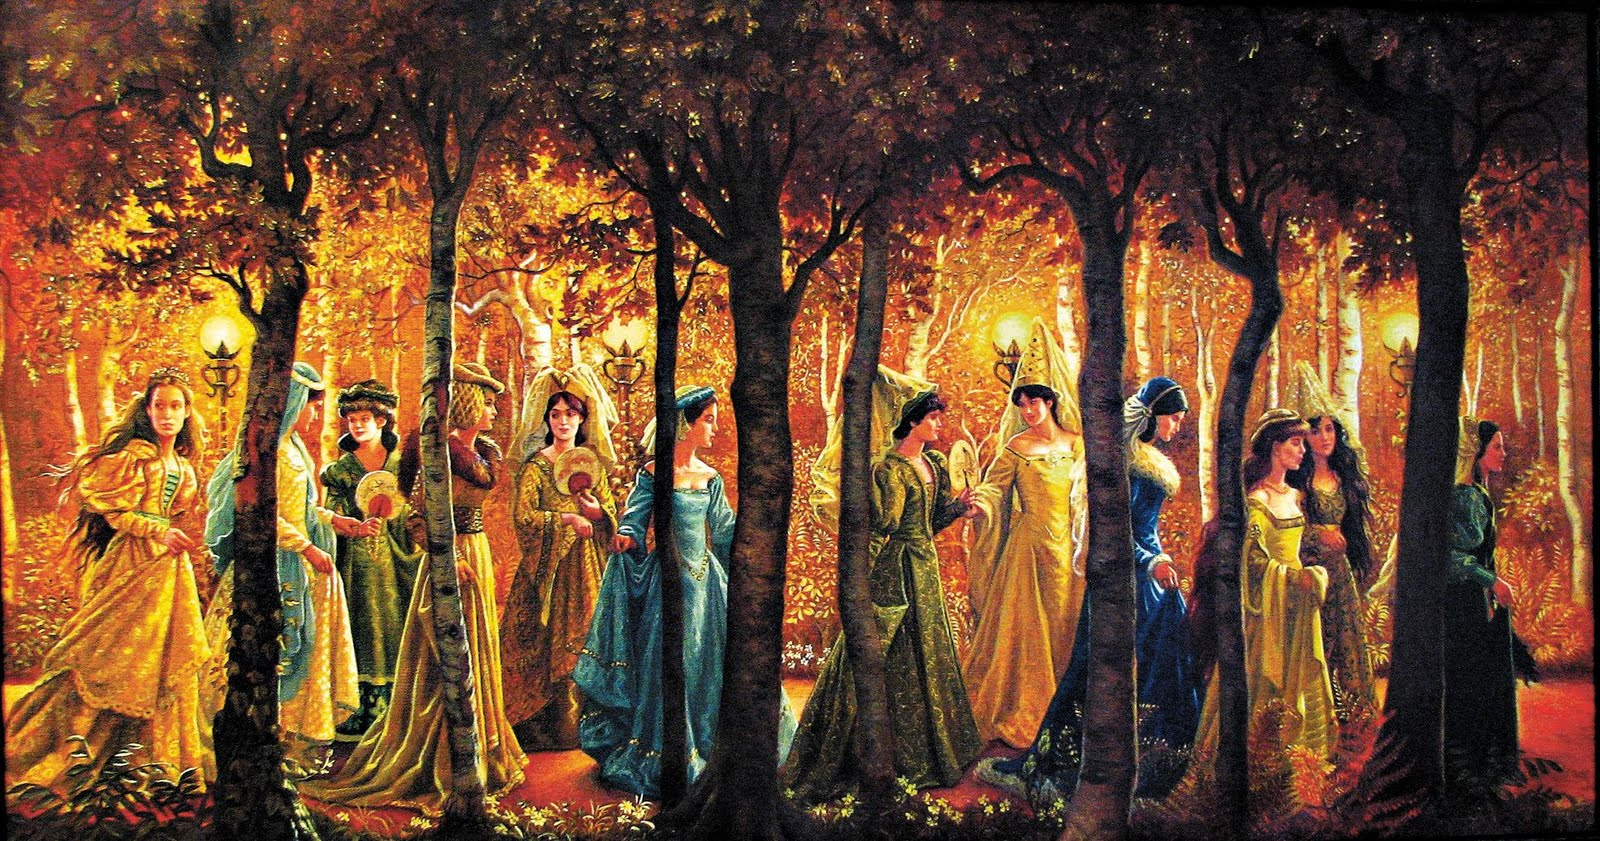 an analysis of the book the twelve dancing princesses The twelve dancing princesses long ago although the king locked the twelve princesses in their bedroom each night purchase this book.